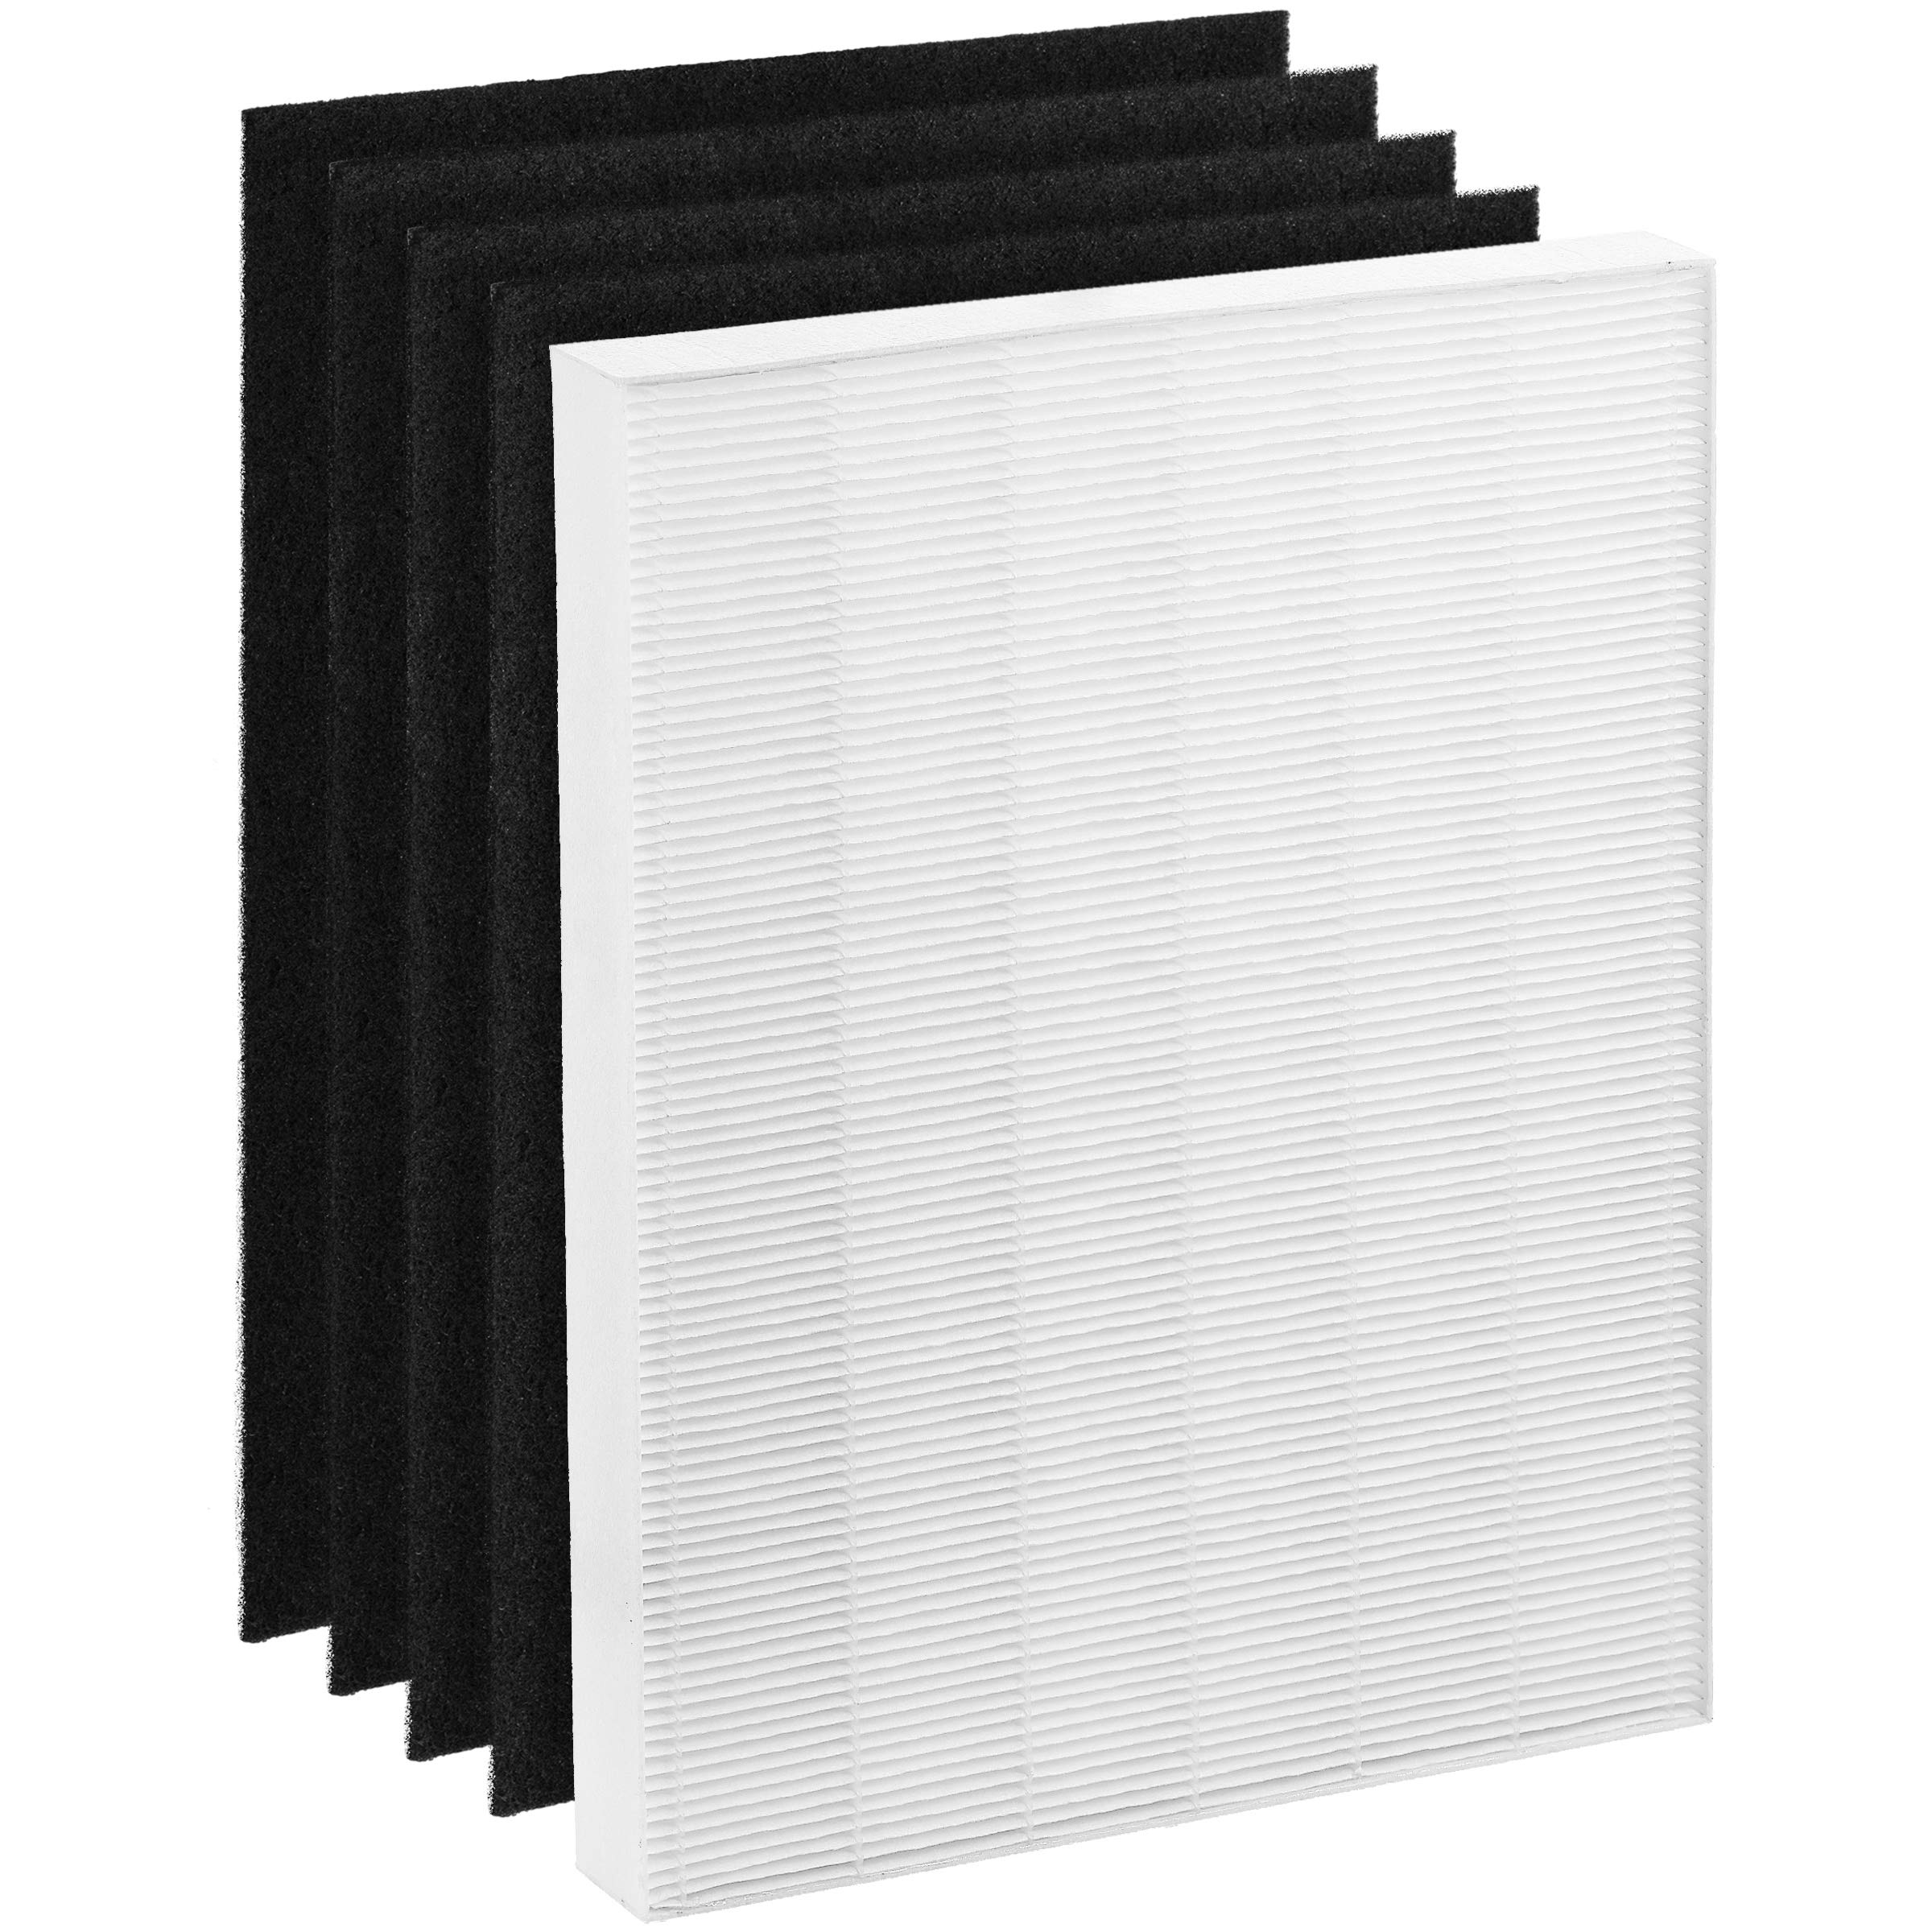 Altec Filters HEPA Premium Quality Replacement Filters Plus 4 Activated Carbon Prefilters Compatible for Winix PlasmaWave 115115 Air Purifier Size 21 Filter A 5300 6300 5300-2 6300-2 P300 C535 by ALTEC FILTERS ADVANCED TECHNOLOGY